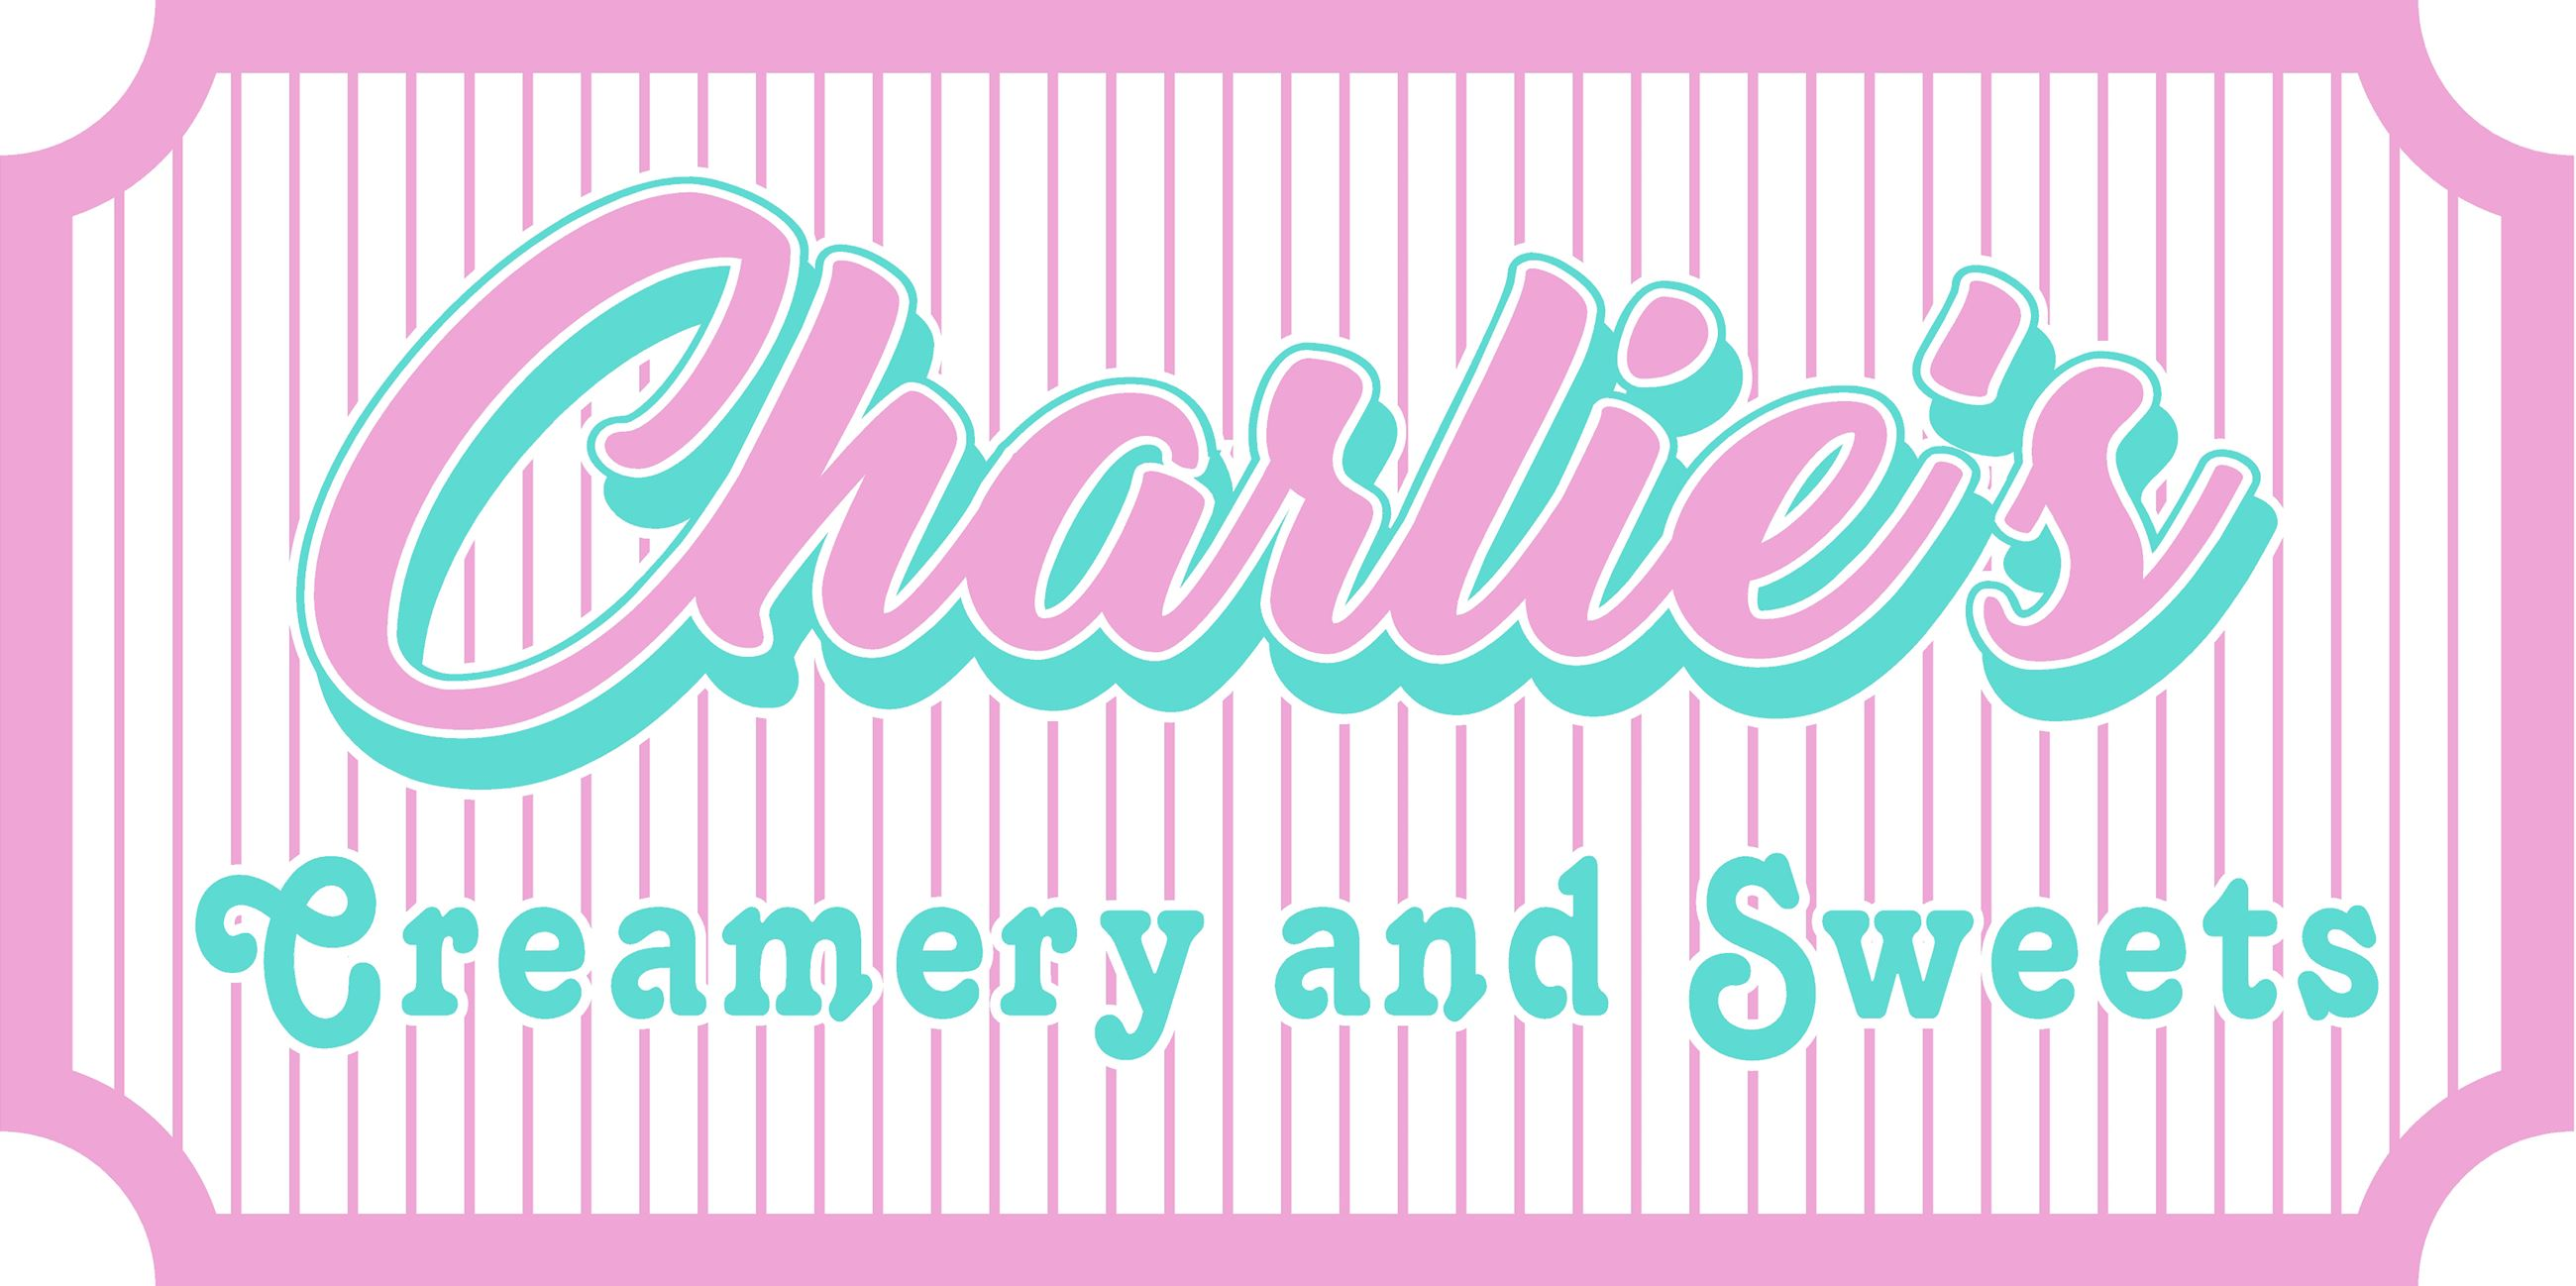 Charlie's Creamery and Sweets